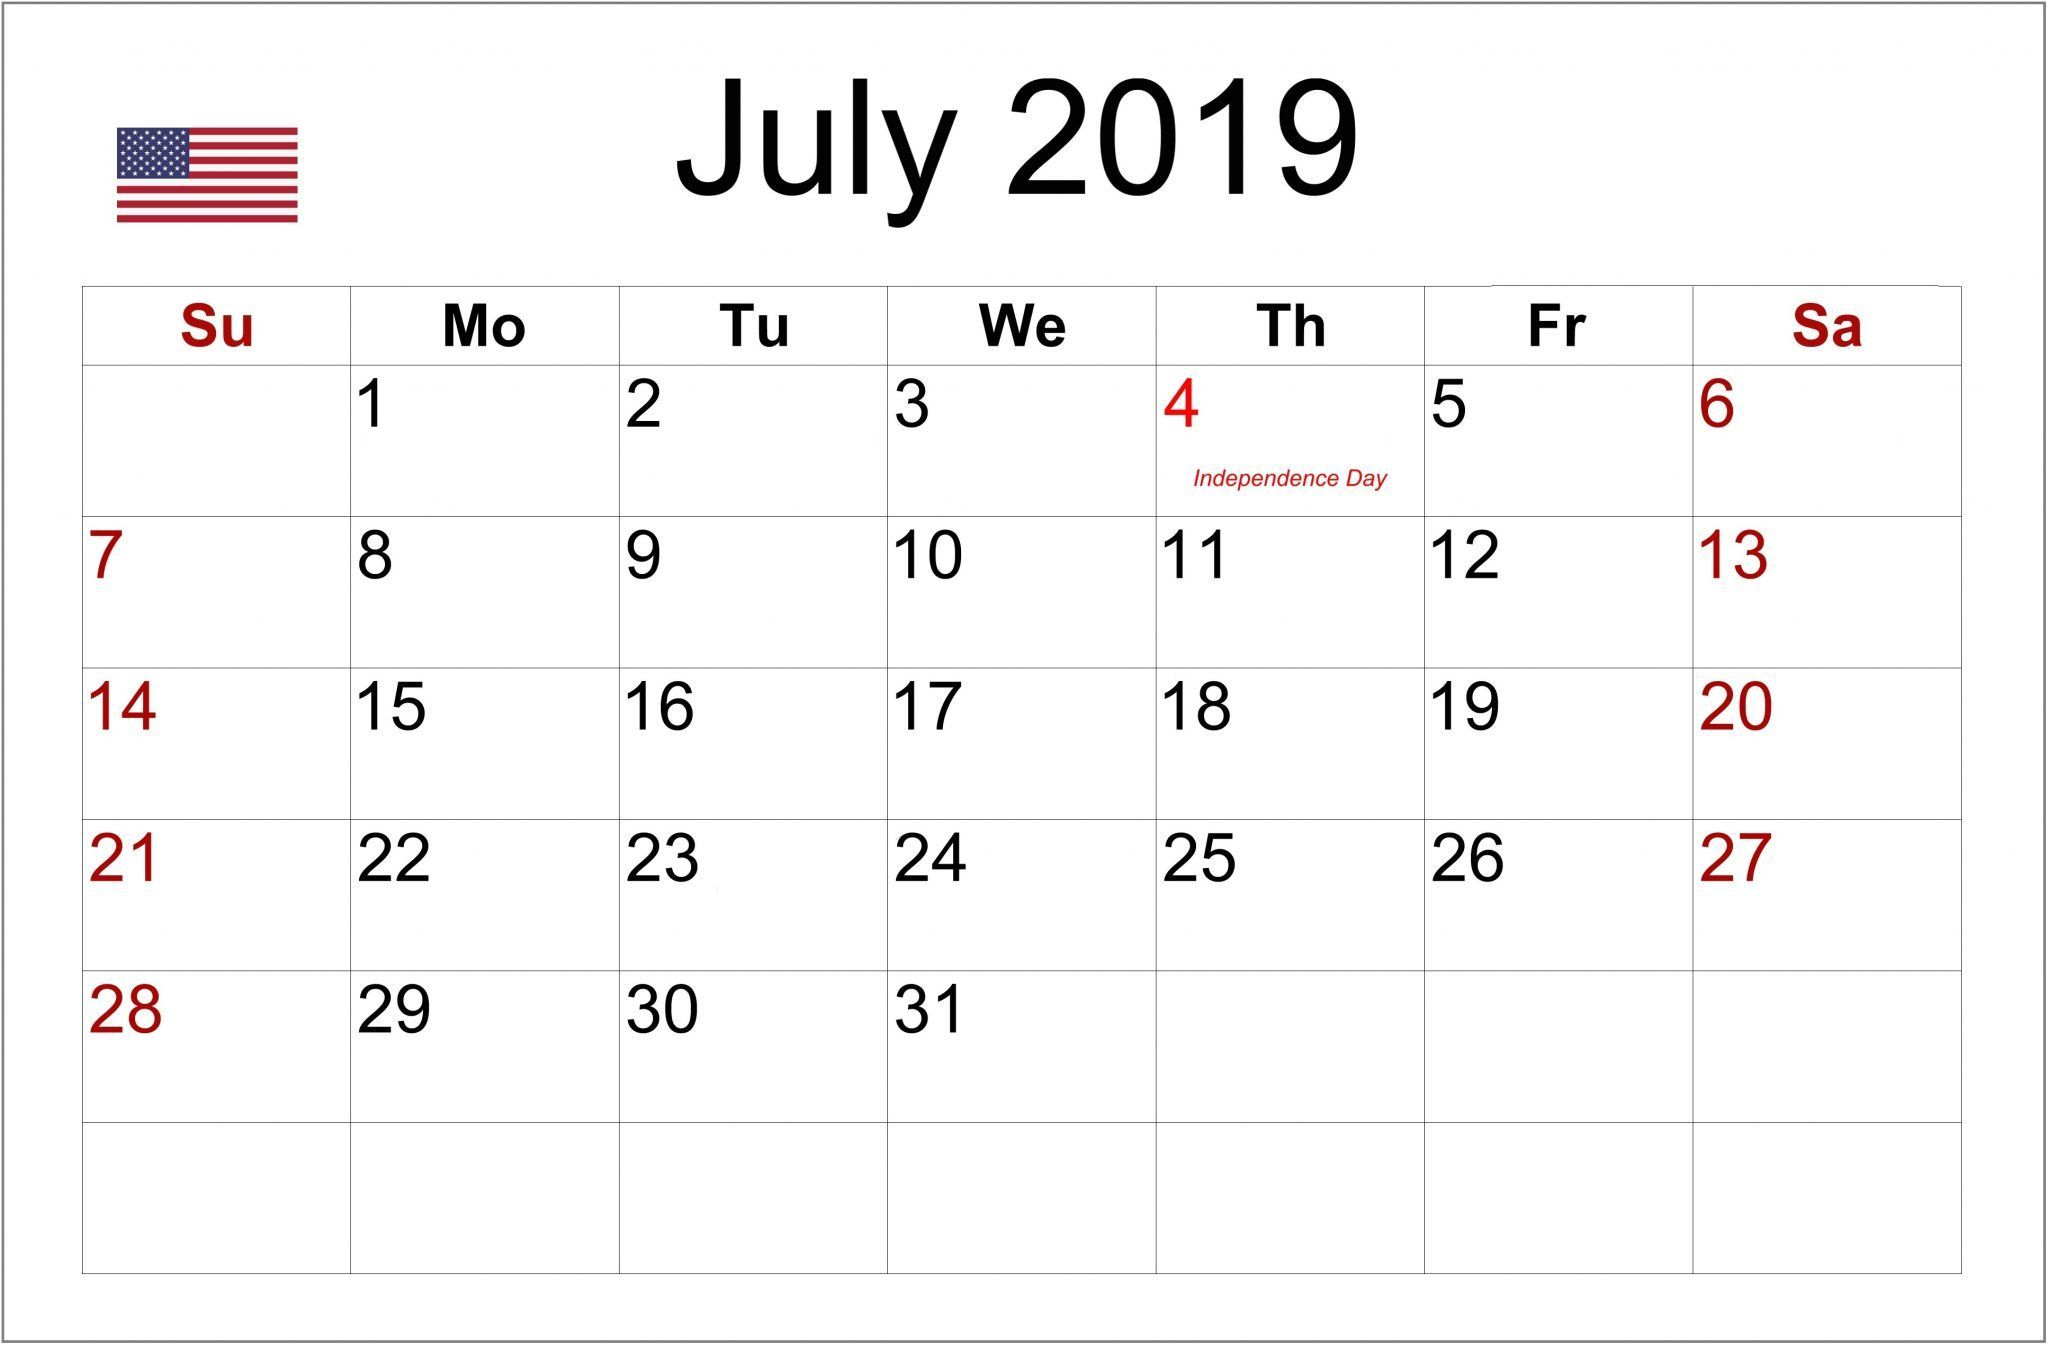 July 2019 Usa Holidays Calendar Local And Federal Holidays With